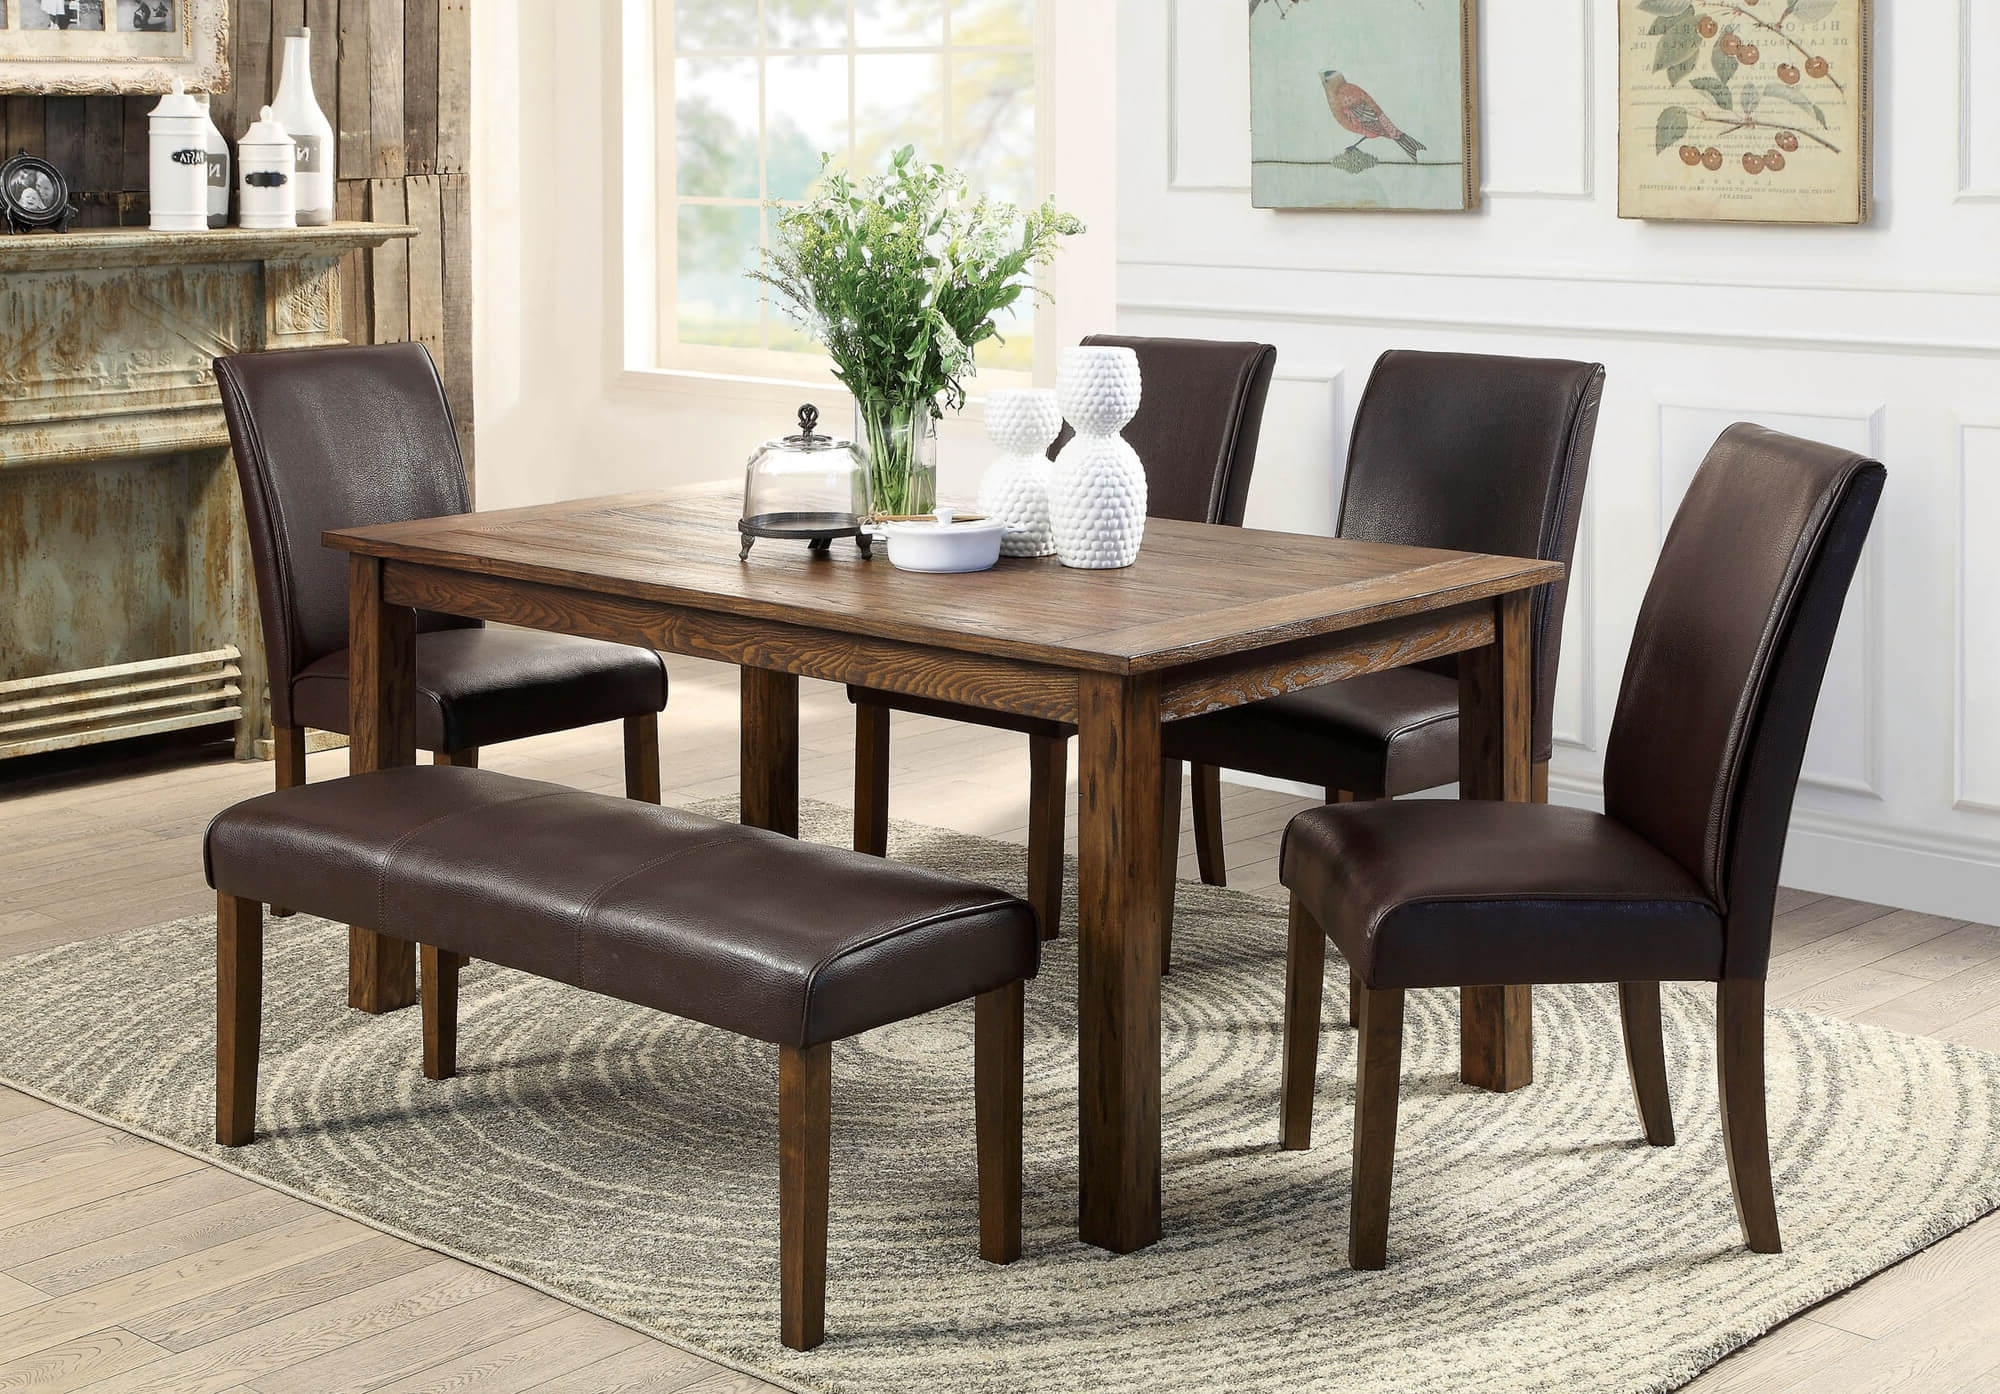 Favorite Indoor Picnic Style Dining Tables Inside 26 Dining Room Sets (Big And Small) With Bench Seating (2018) (View 7 of 25)